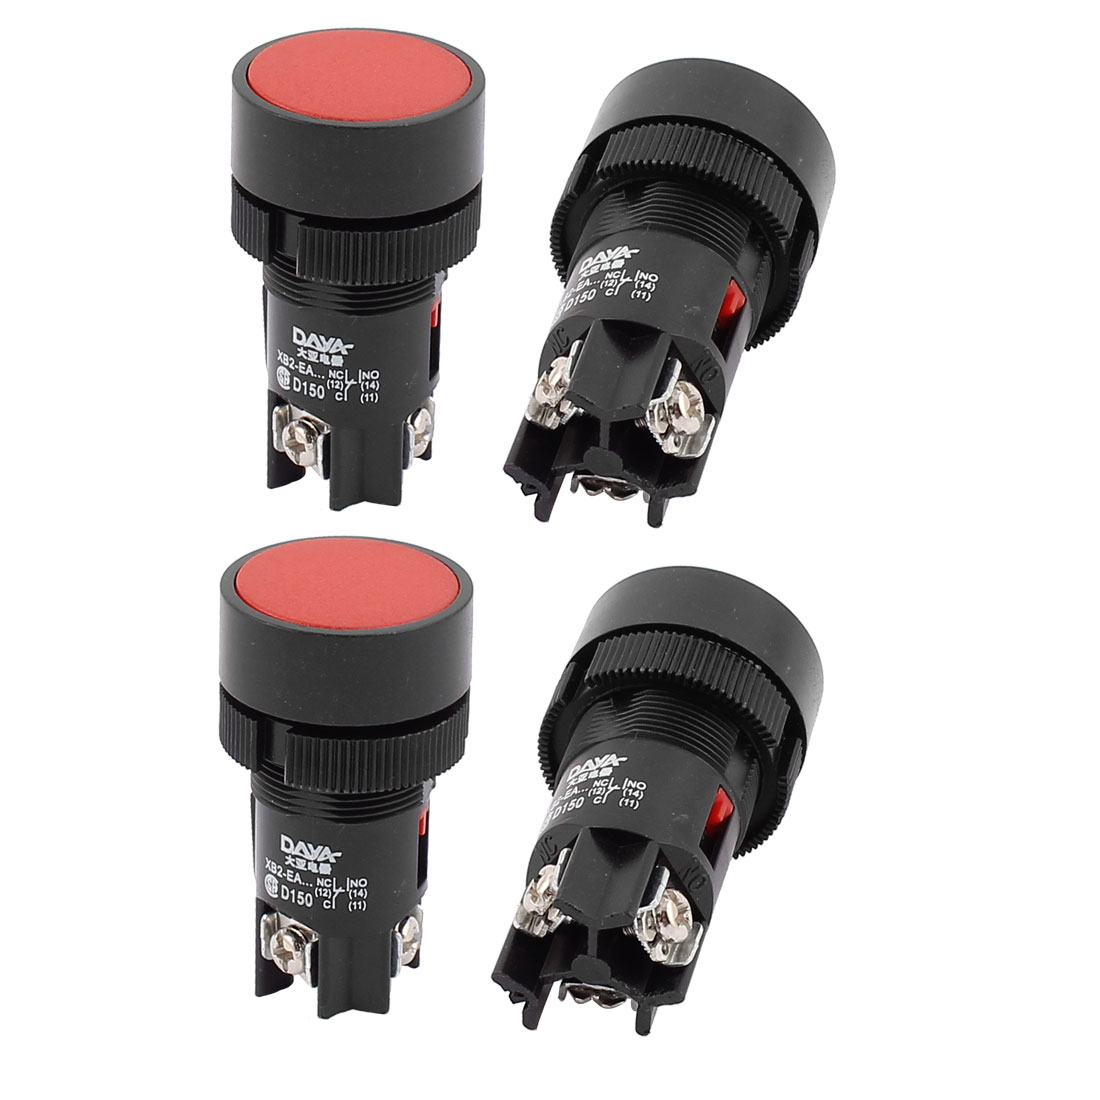 AC 220-250V 3A Panel Mounting 3 Terminal Red Push Button Switch 4PCS